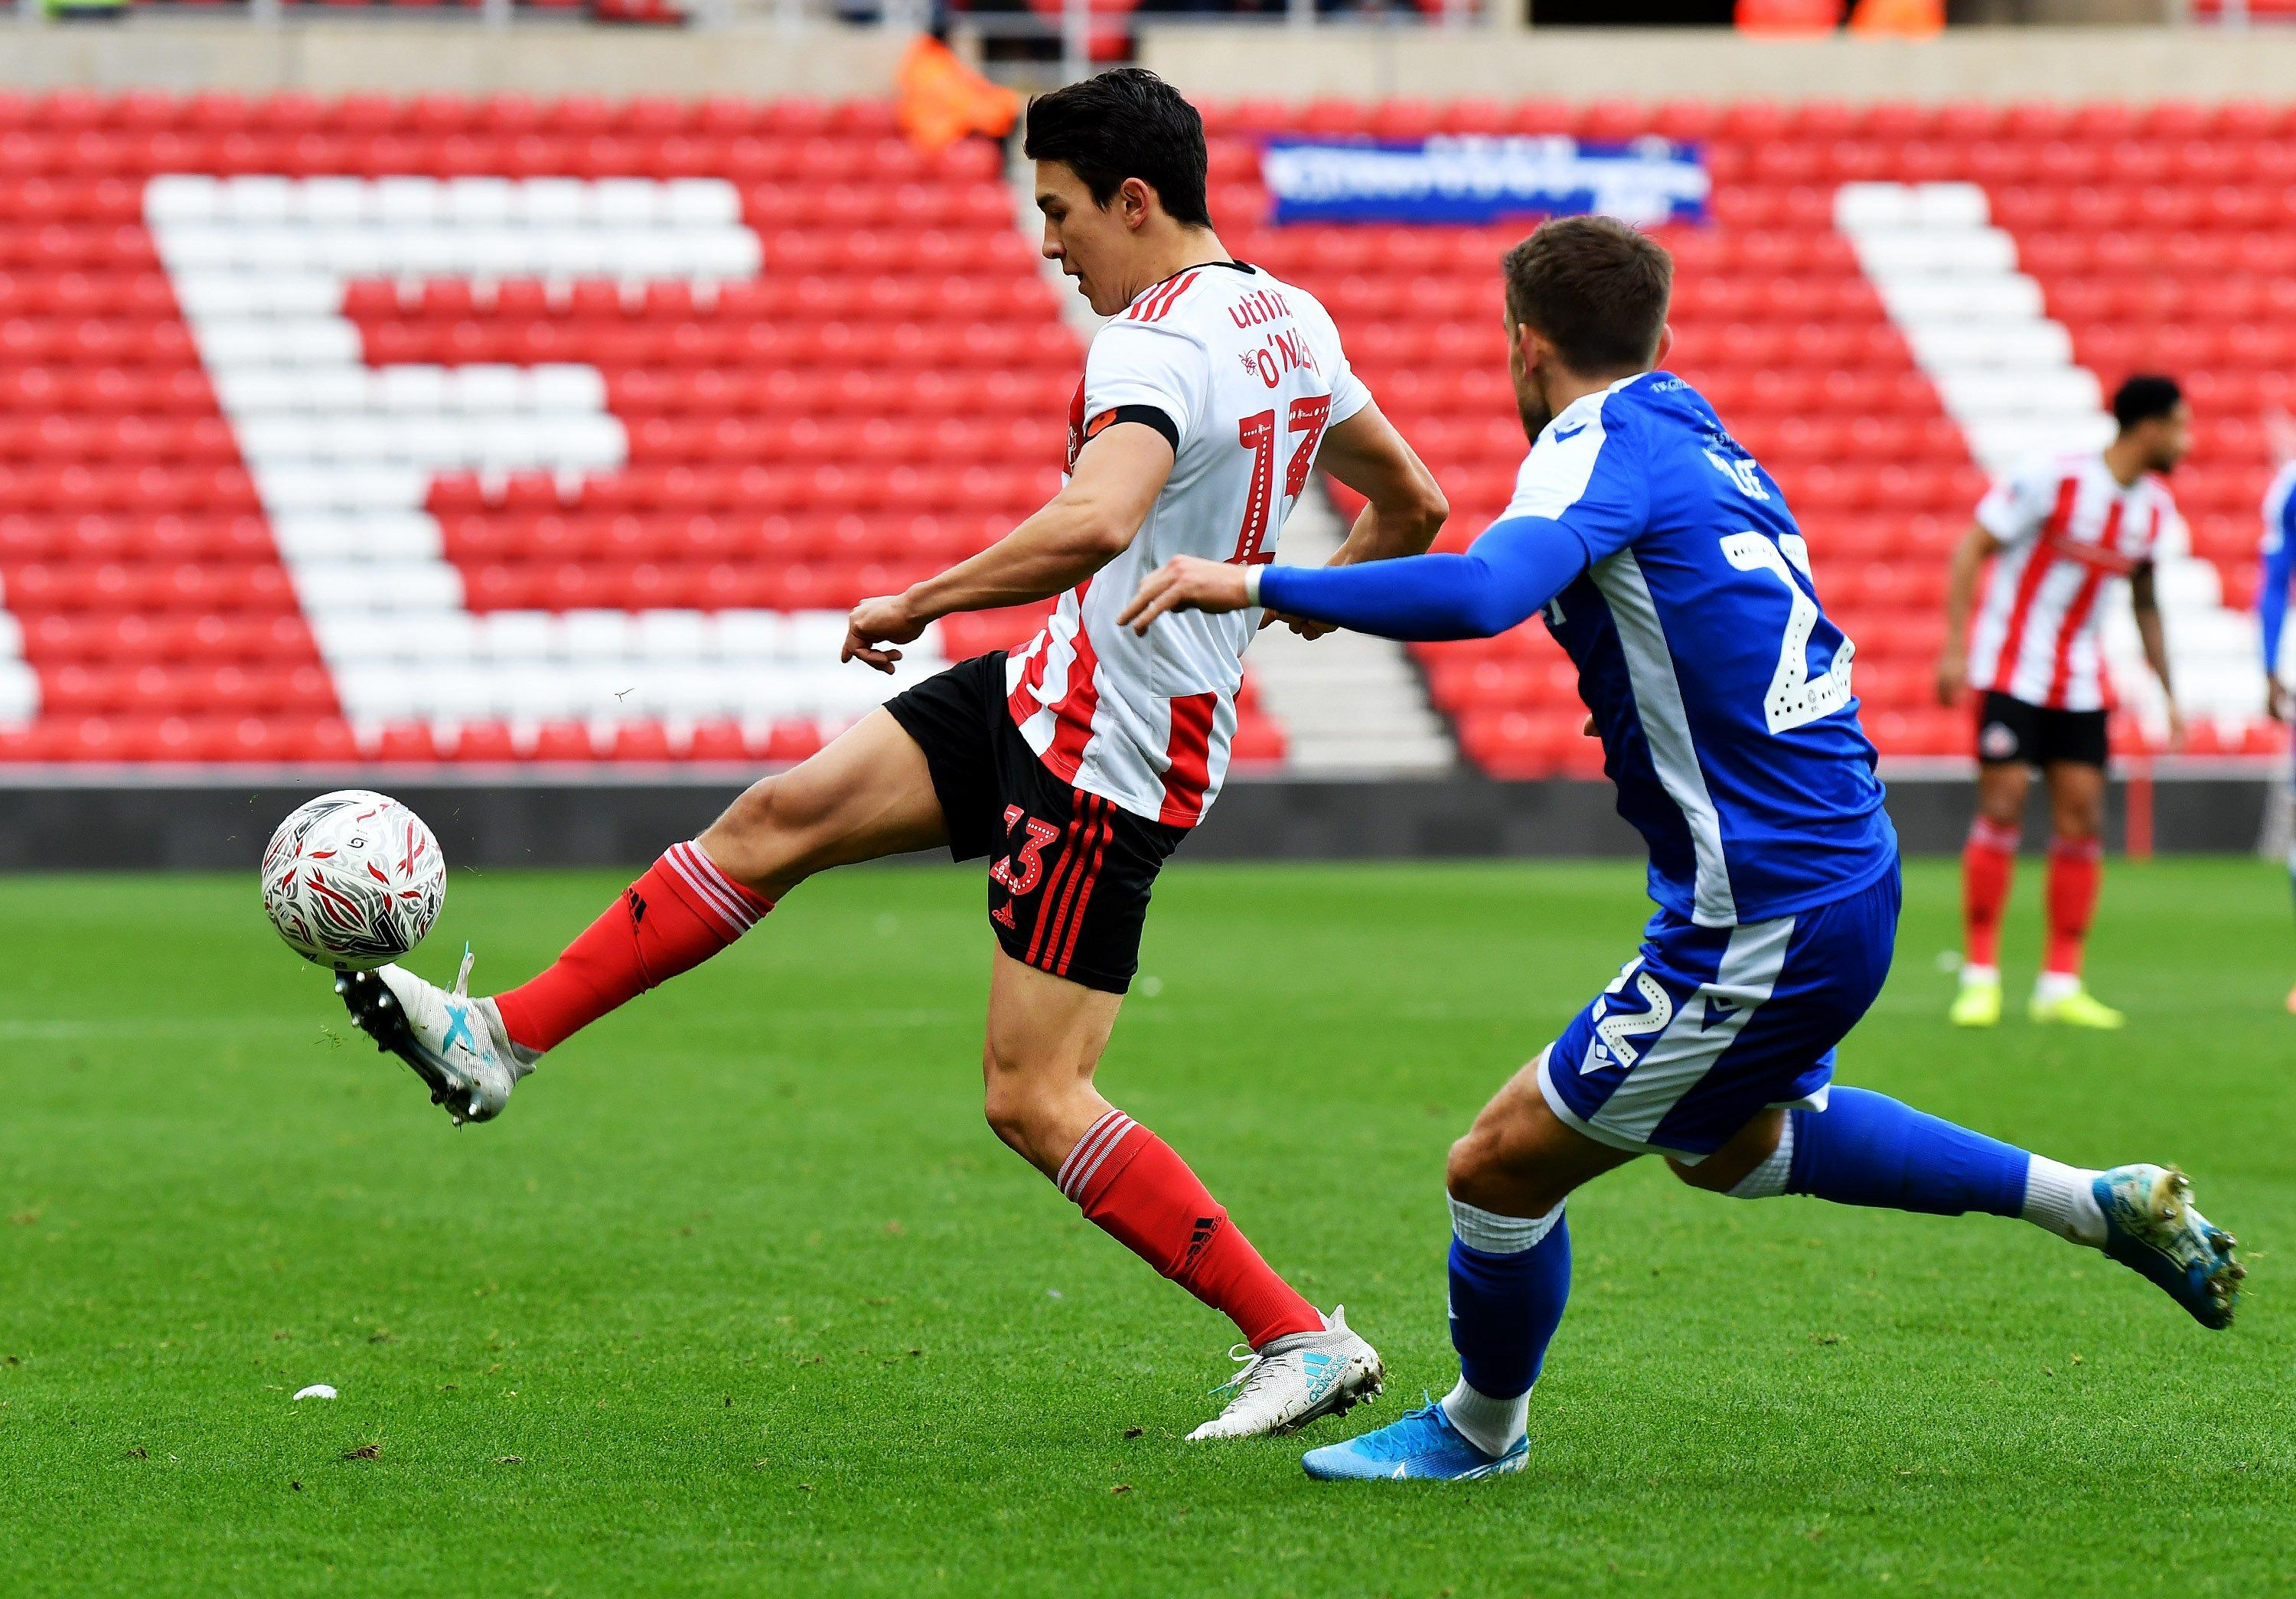 Gary Rowell: Sunderland's recruitment has been poor for years but this player is bucking the trend - Sunderland Echo